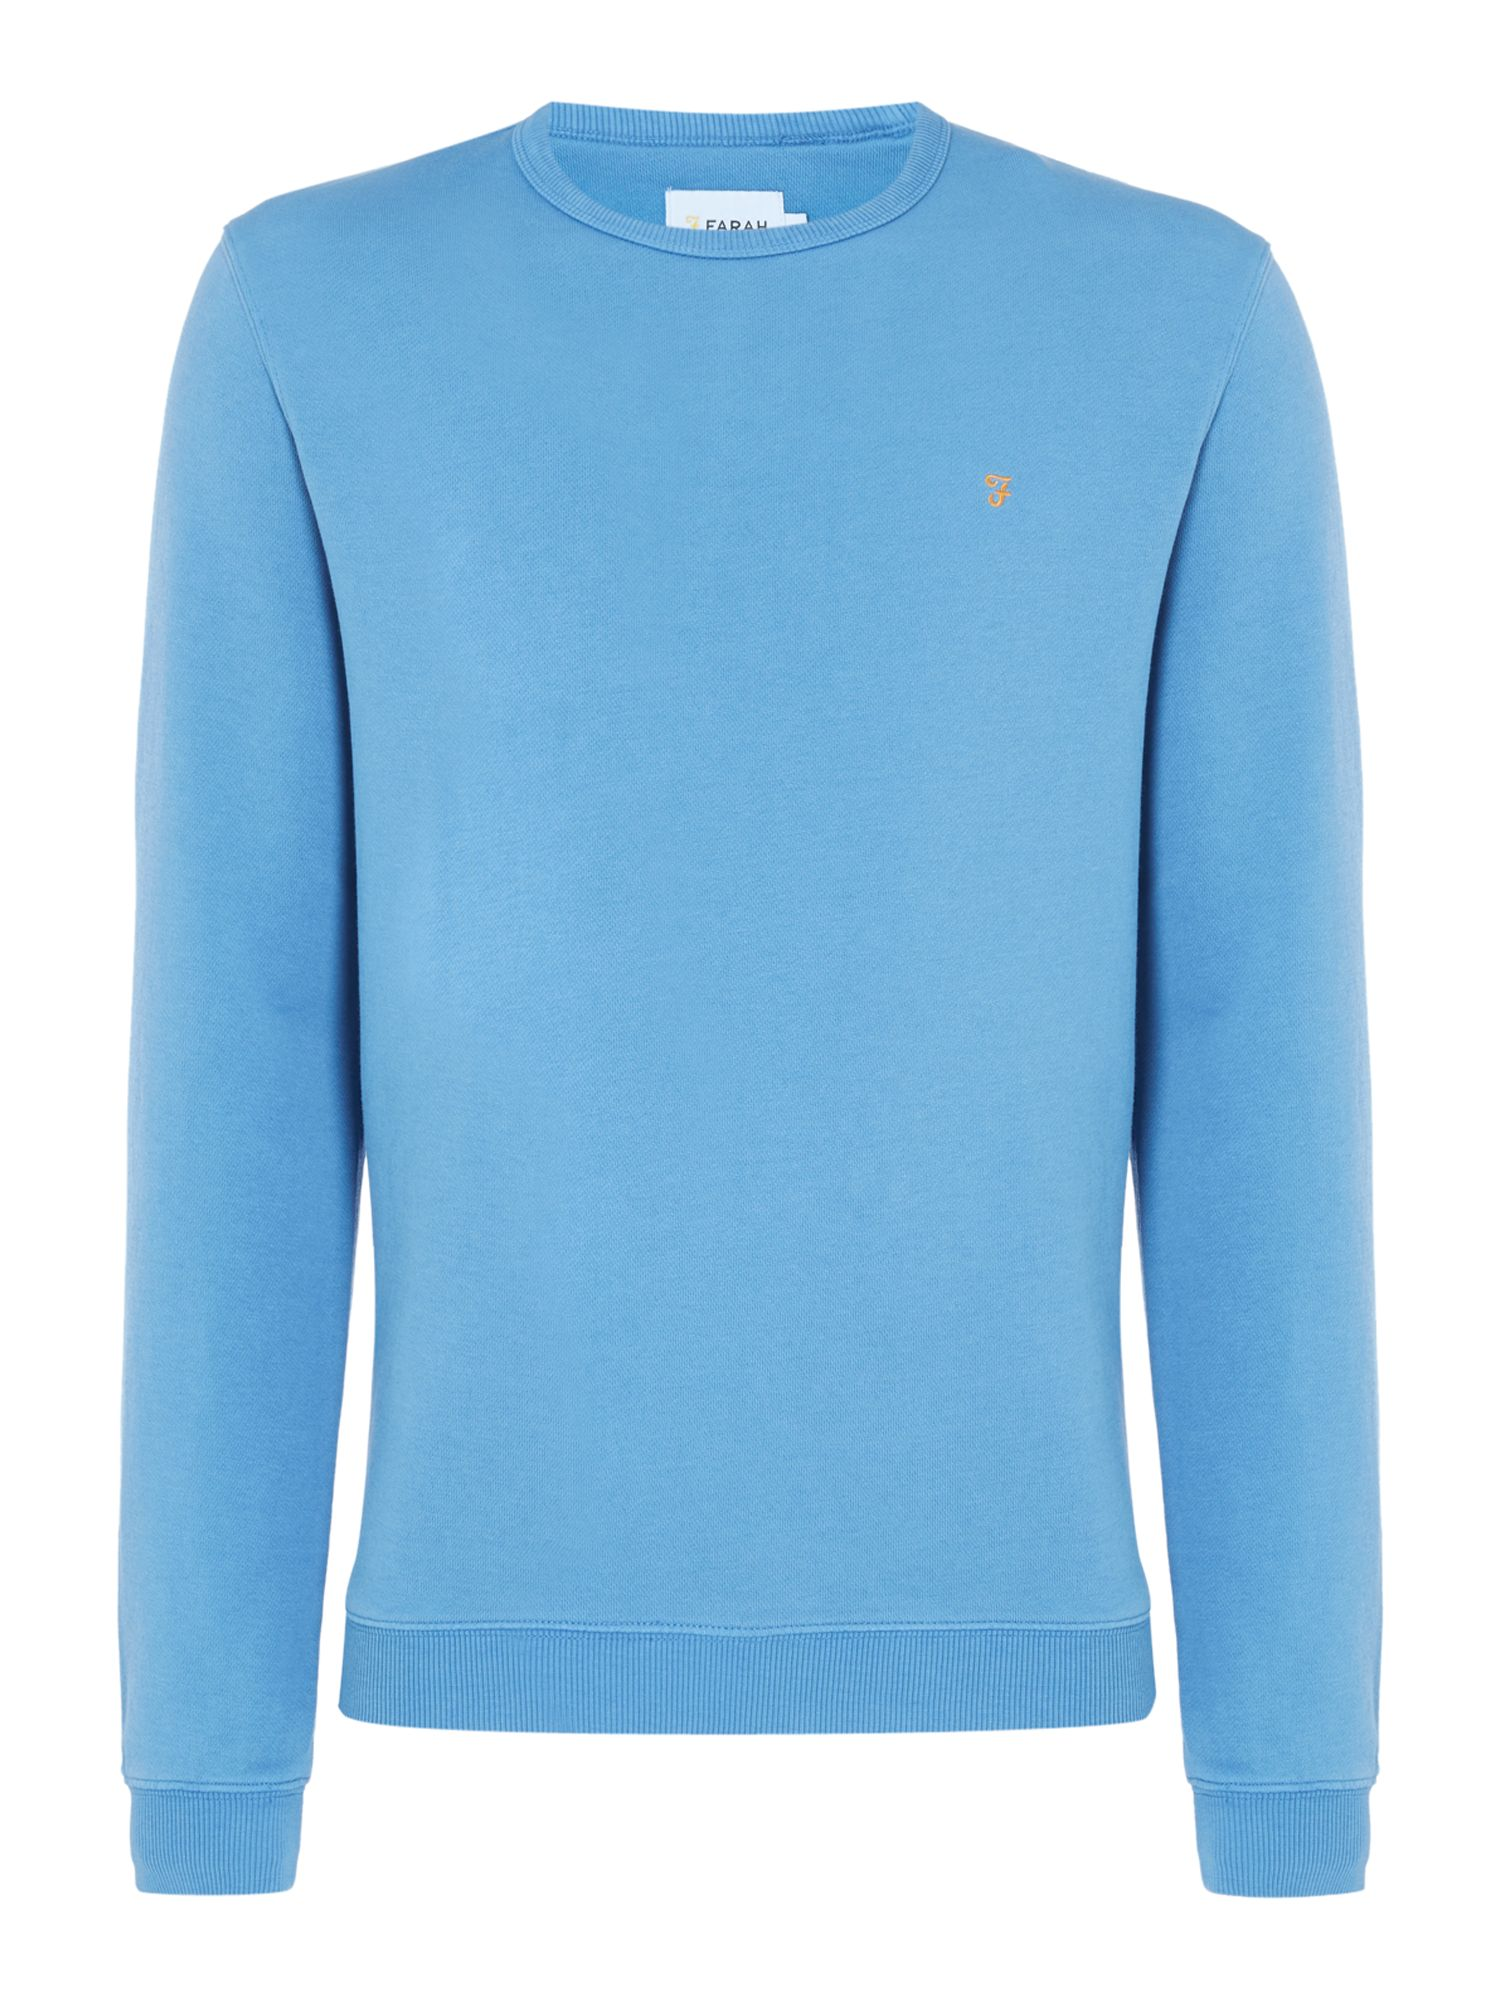 Men's Farah Pickwell Slim Fit Sweatshirt, Blue